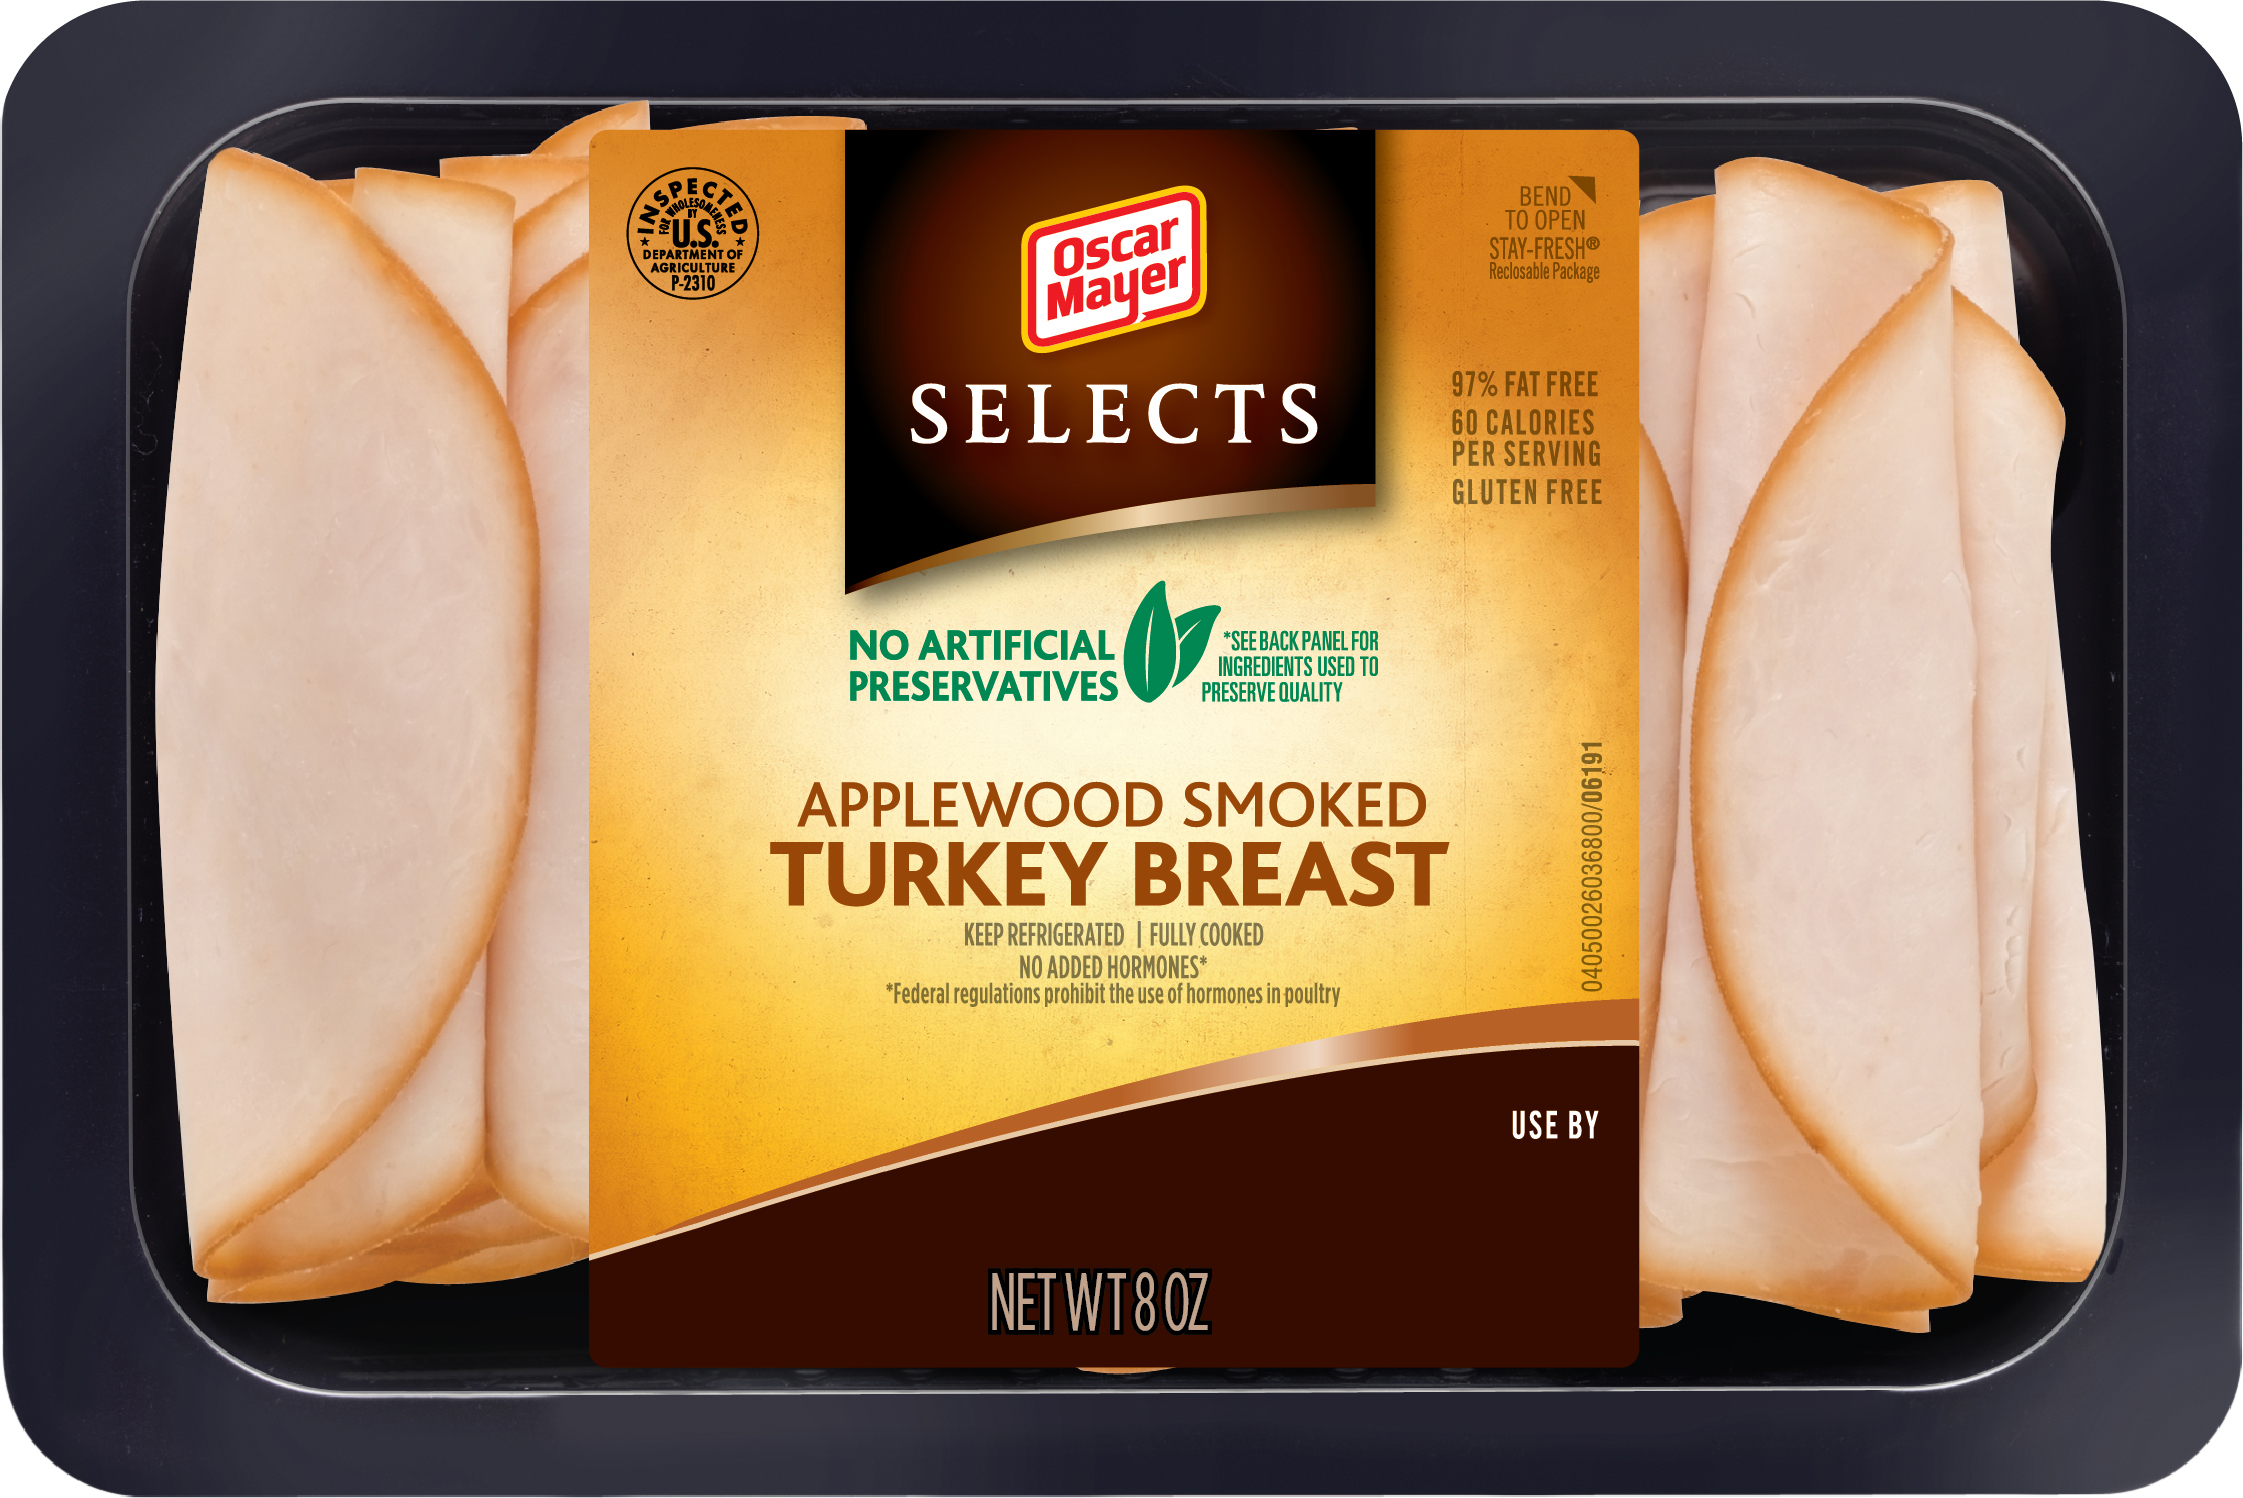 consumer insight leads oscar mayer selects to go glutenfree